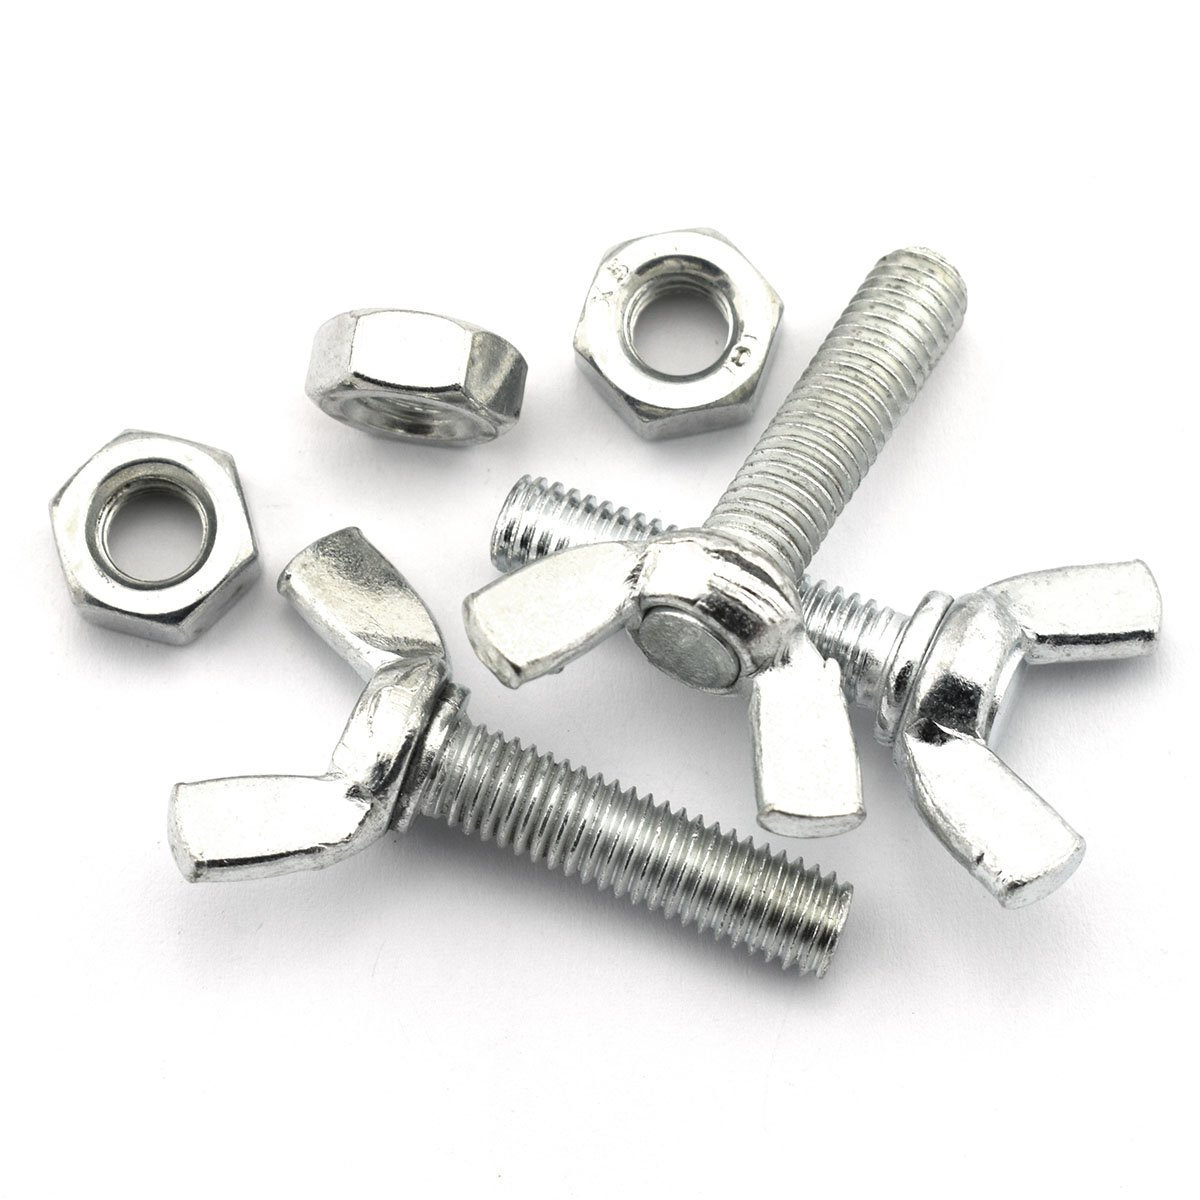 10 Pack M8x1.25'' Wing Bolt Sets 30mm Carbon Steel Zinc Plated Butterfly Screw with Hex Nut